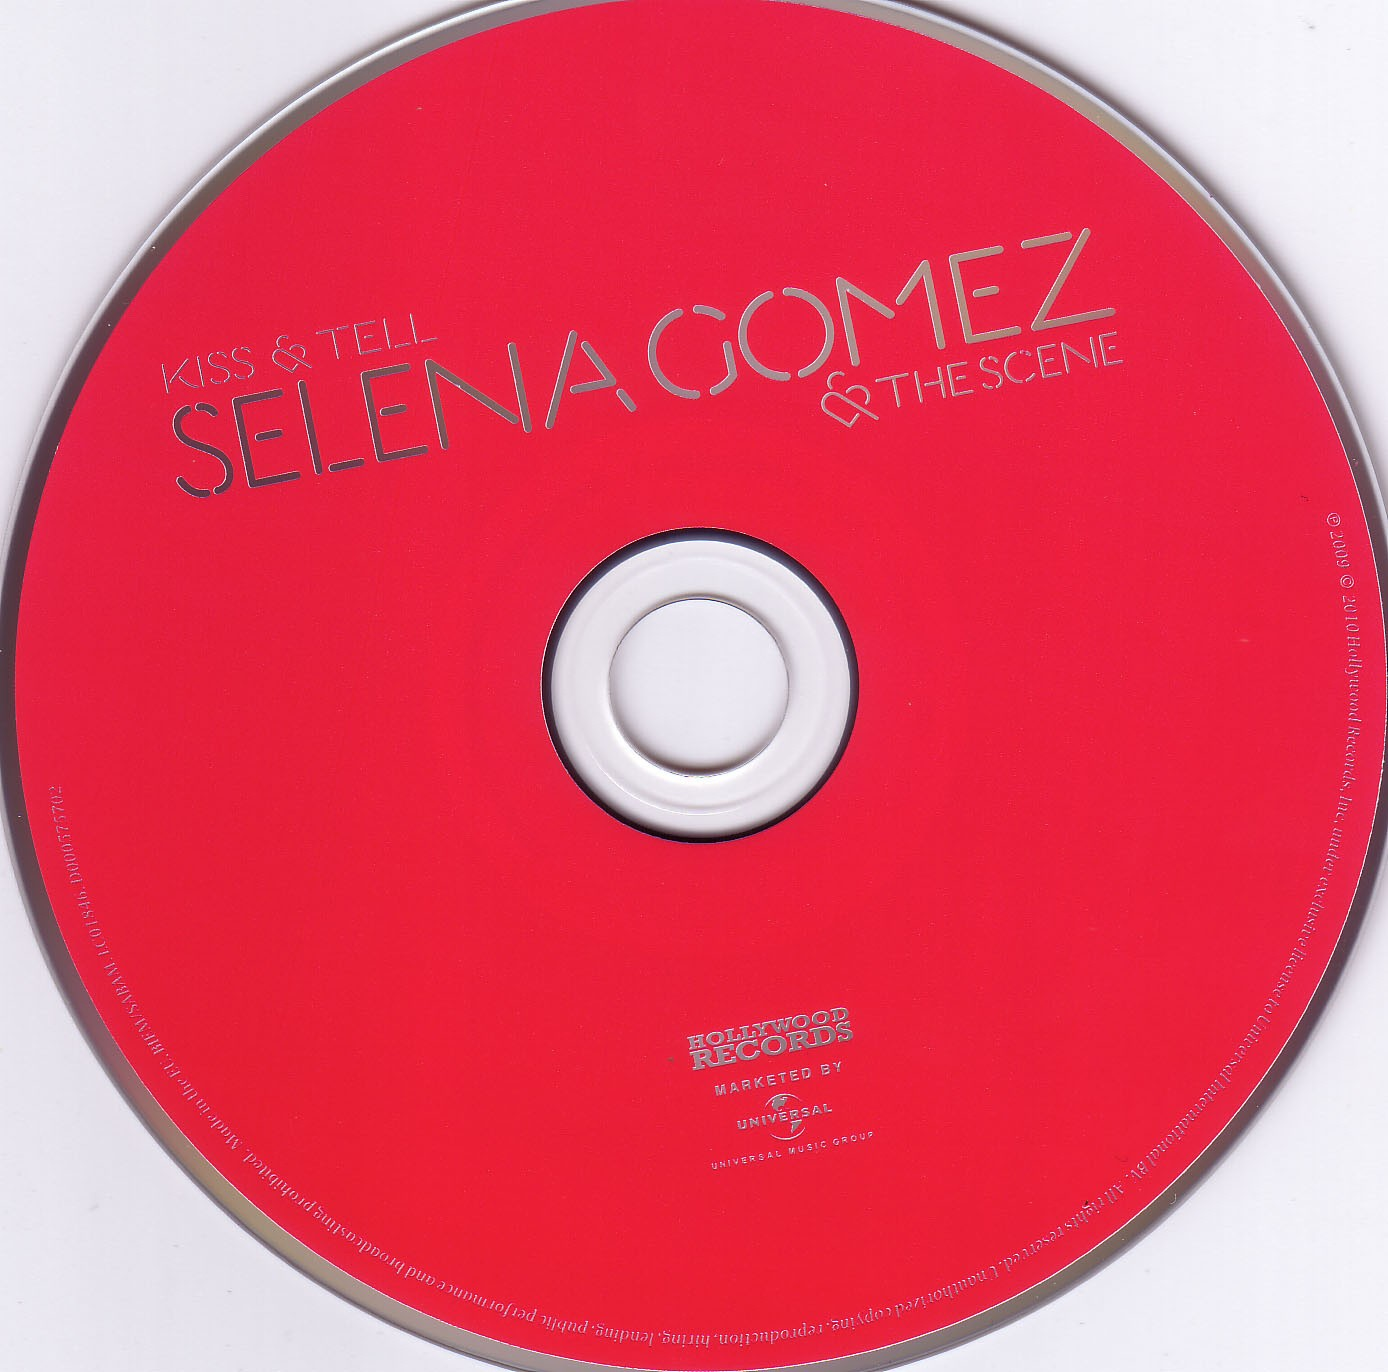 http://1.bp.blogspot.com/-IcpzVJFnsMQ/TjMjeOBgysI/AAAAAAAACtU/3RrmhiTMGr8/s1600/%255BAllCDCovers%255D_selena_gomez_the_scene_kiss_tell_international_edition_2010_retail_cd-cd.jpg